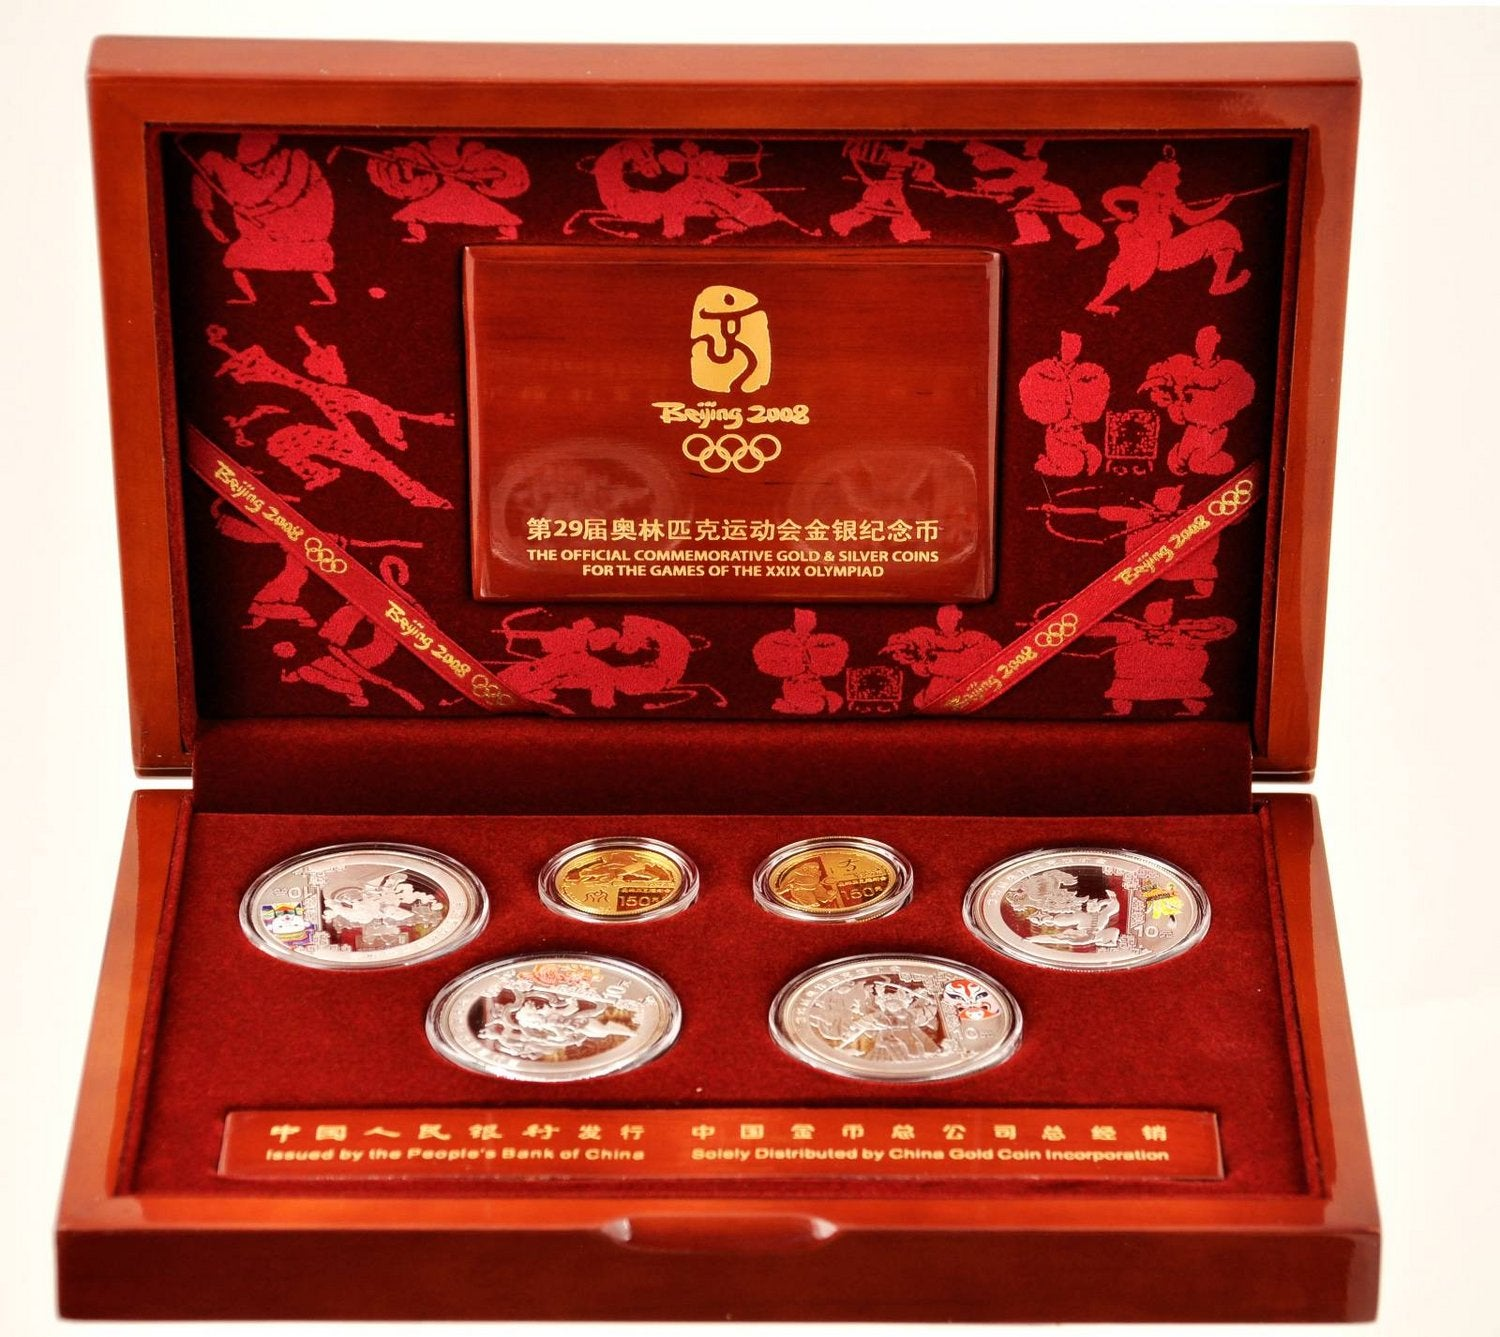 2008 Bejing Olympic Silver and Gold Coins Set Series 3